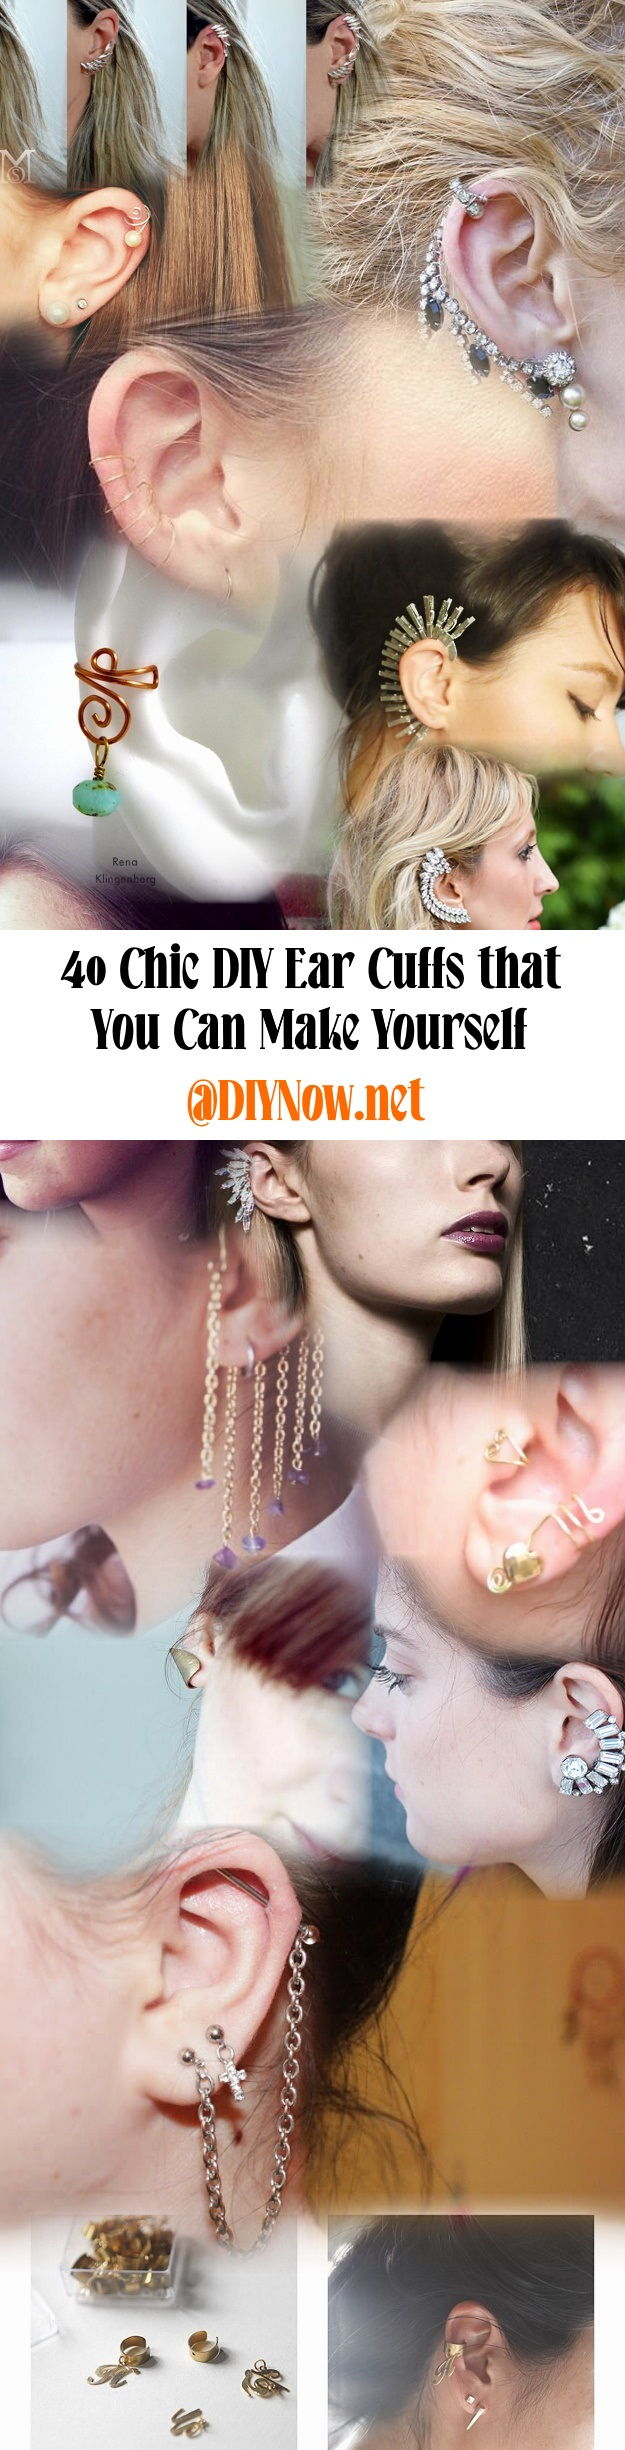 40 Chic DIY Ear Cuffs that You Can Make Yourself